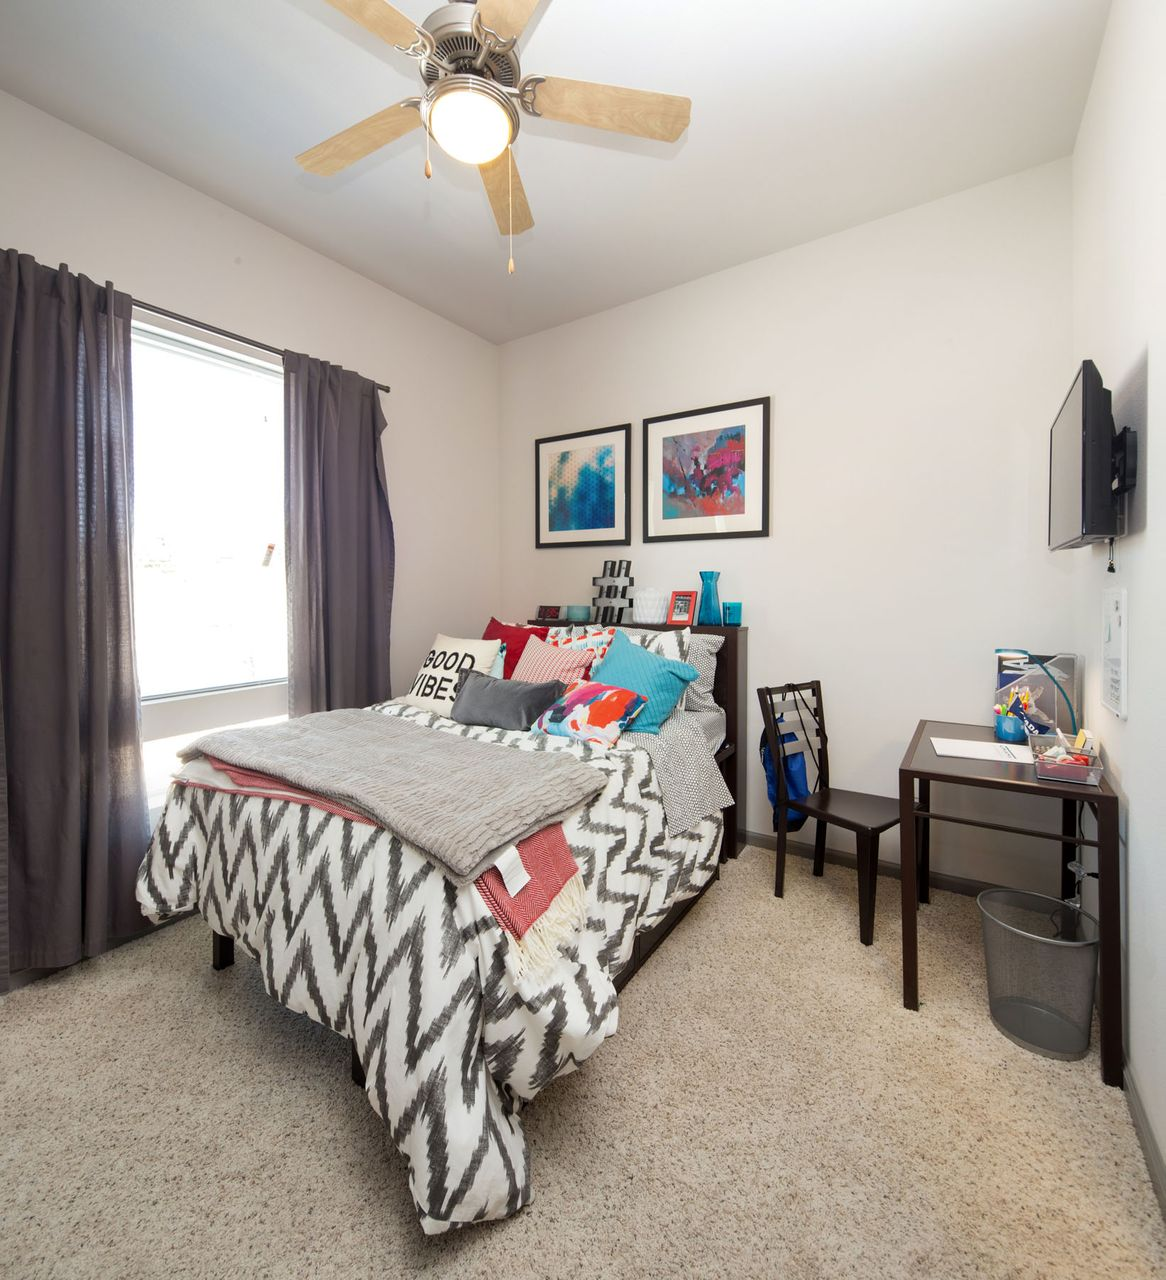 I Need Help Finding A Apartment: Younion Student Living Reno, NV Student Housing • Reviews